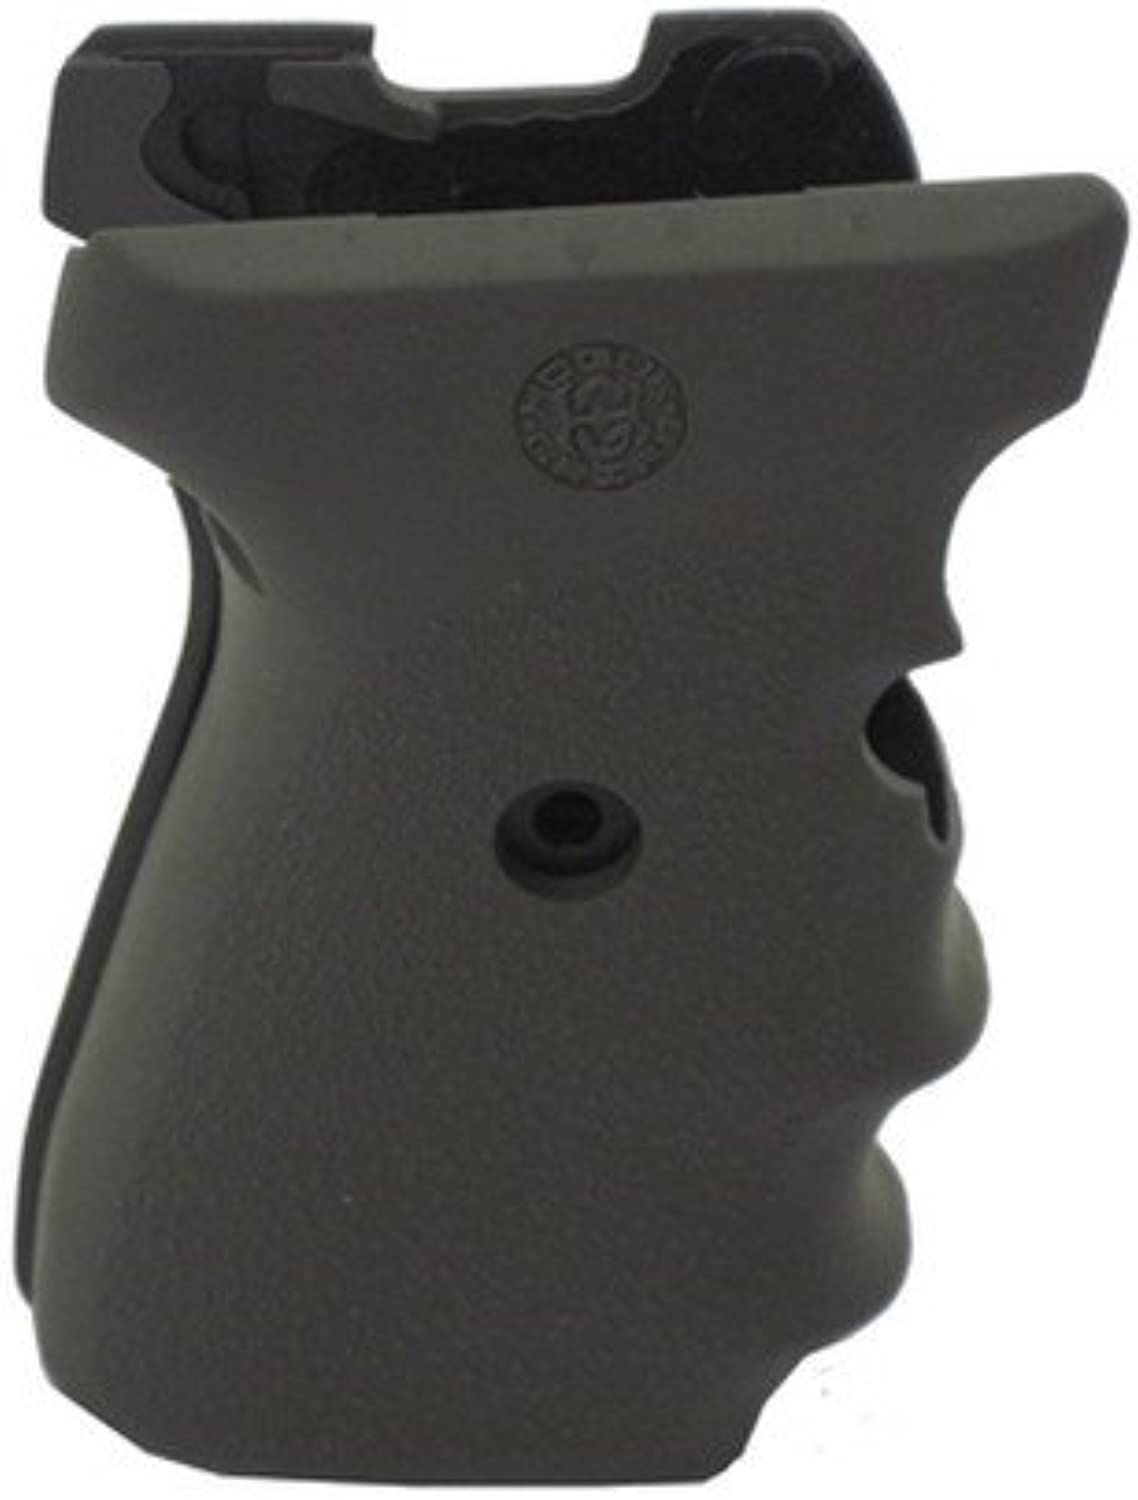 Hogue SIG P239 Rubber Grips with Finger Grooves,  Olive Drab Green